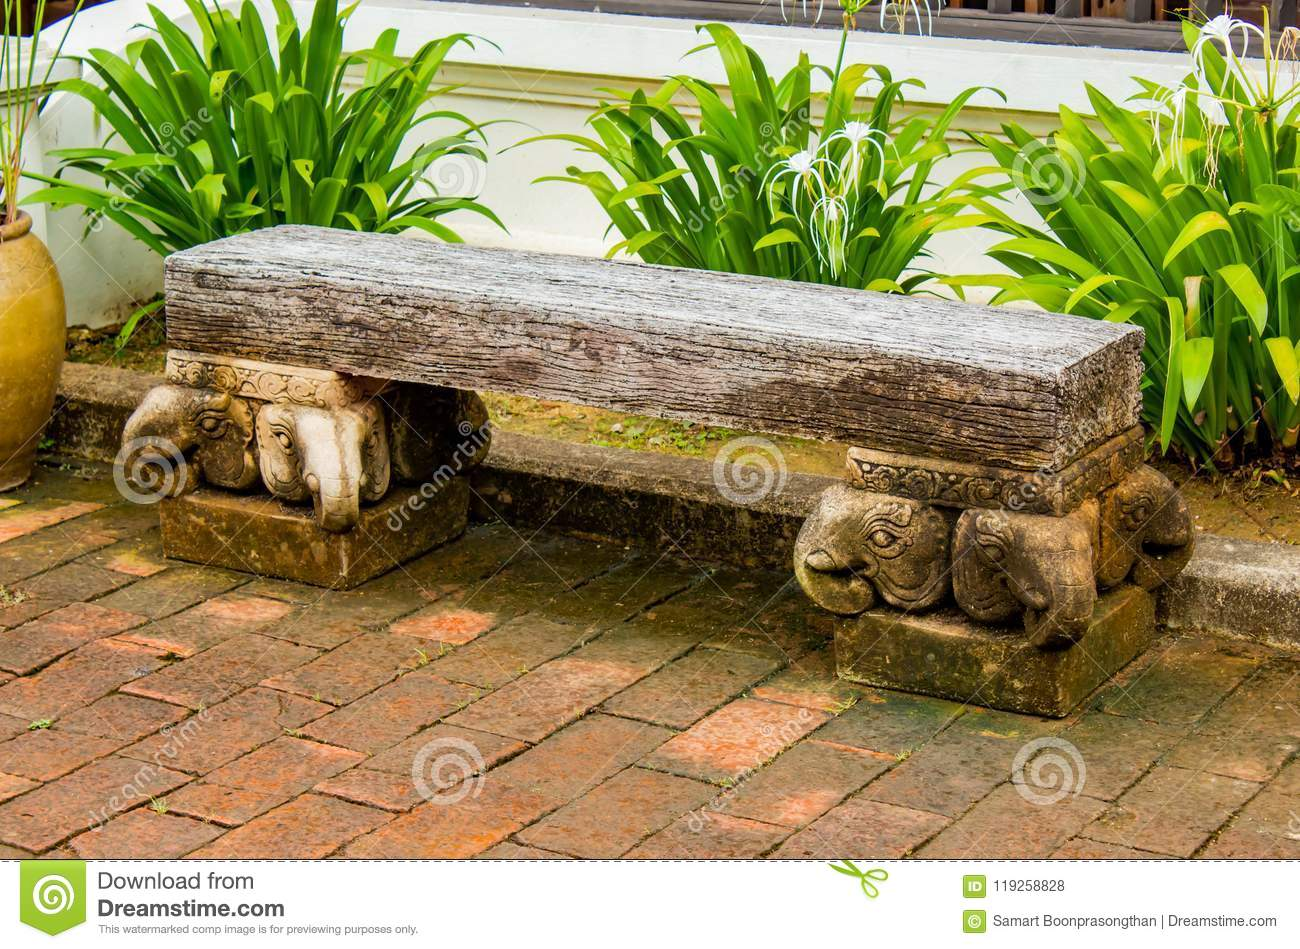 The Cement Chairs The Corridors Garden. Stock Photo - Image of color ...